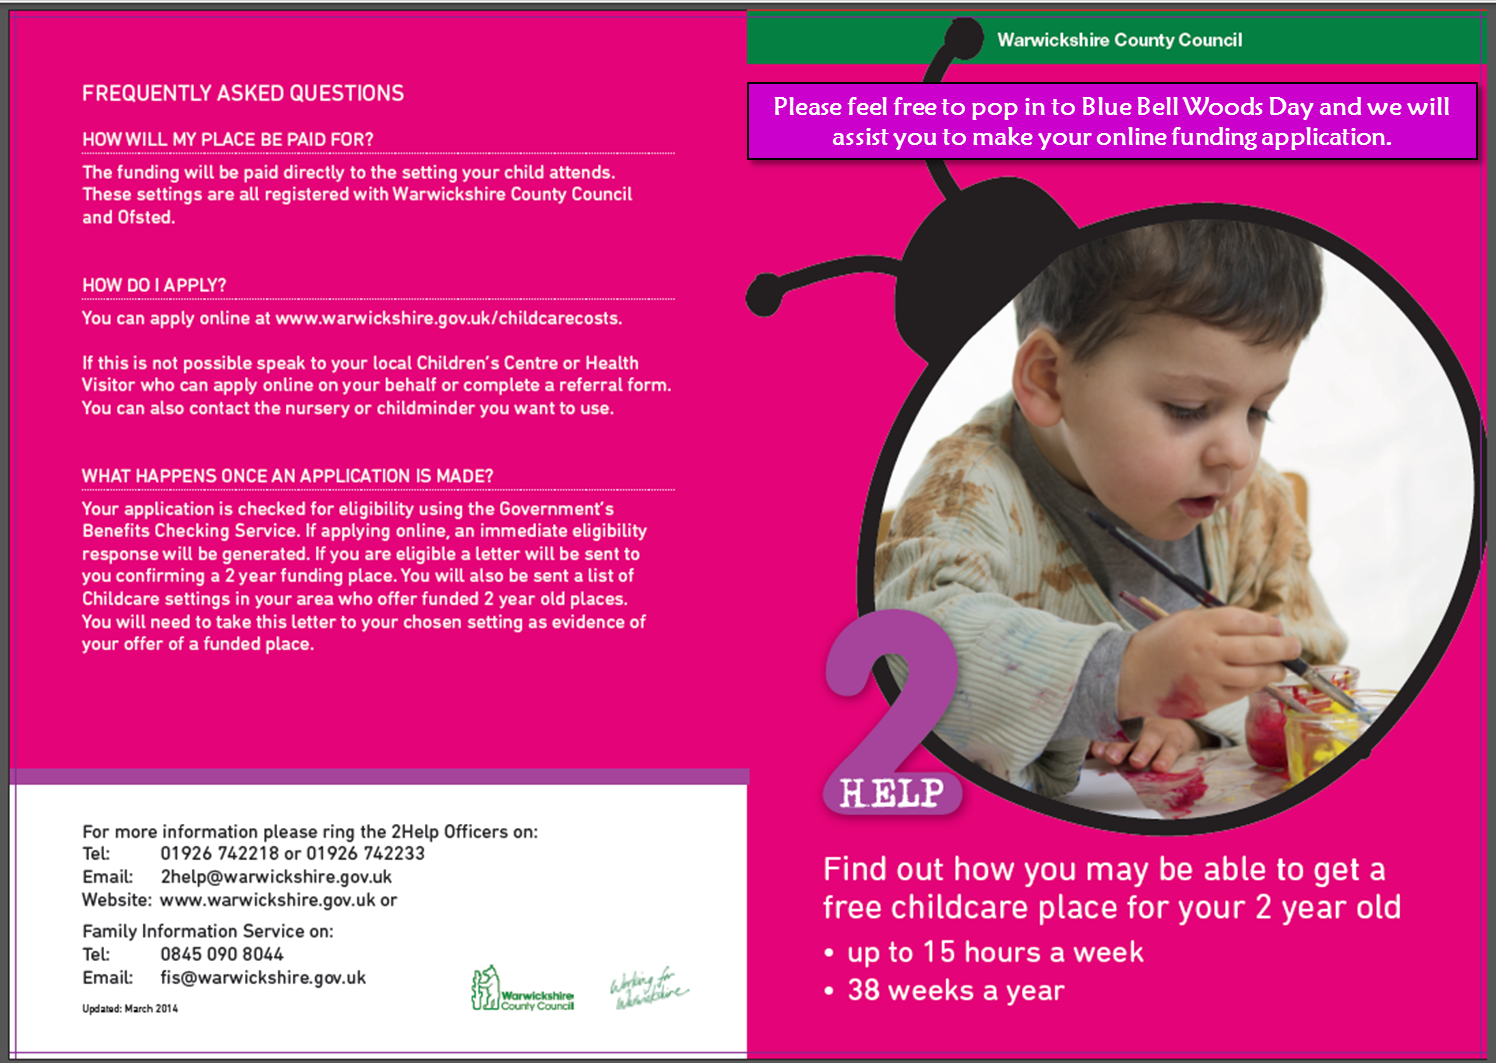 blue bell woods day nursery 2 year old funding